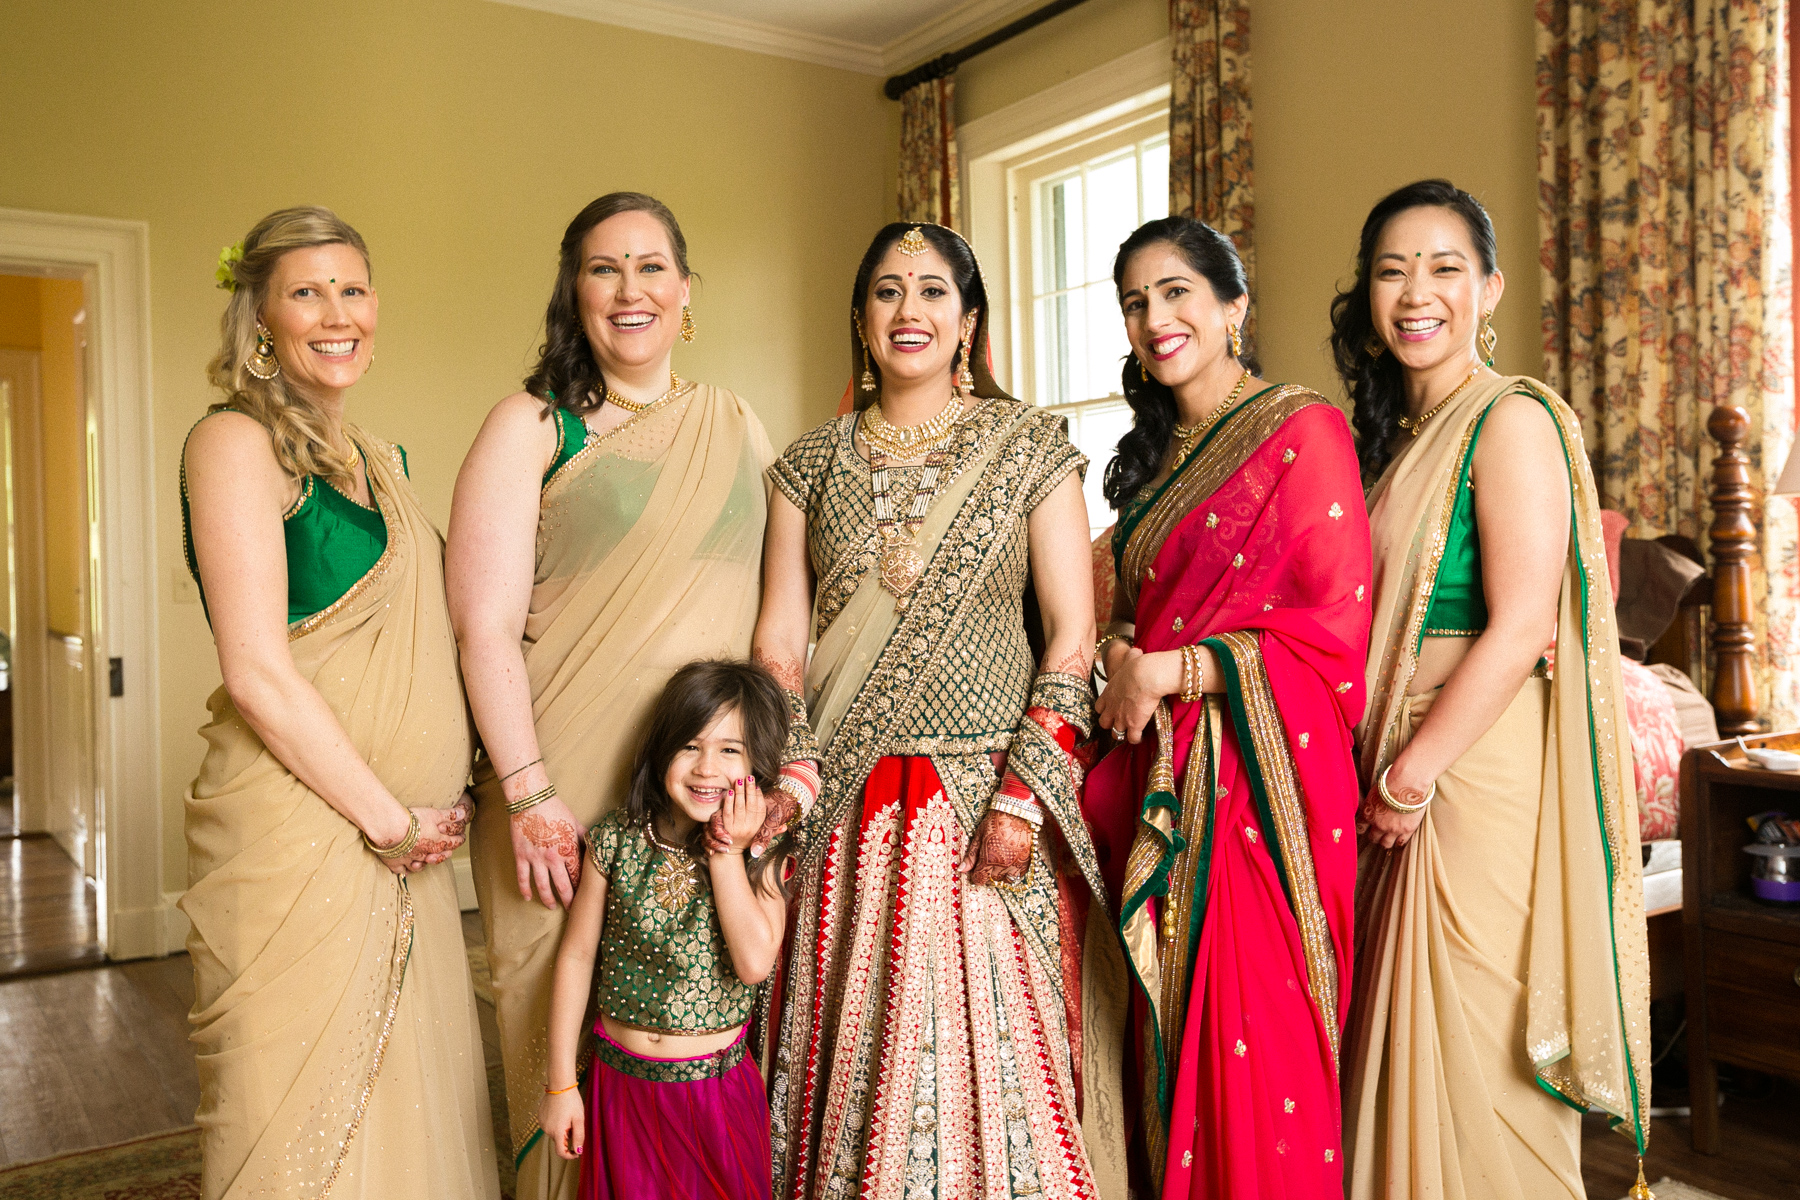 indian-south-asian-wedding-getting-ready-details-18.jpg